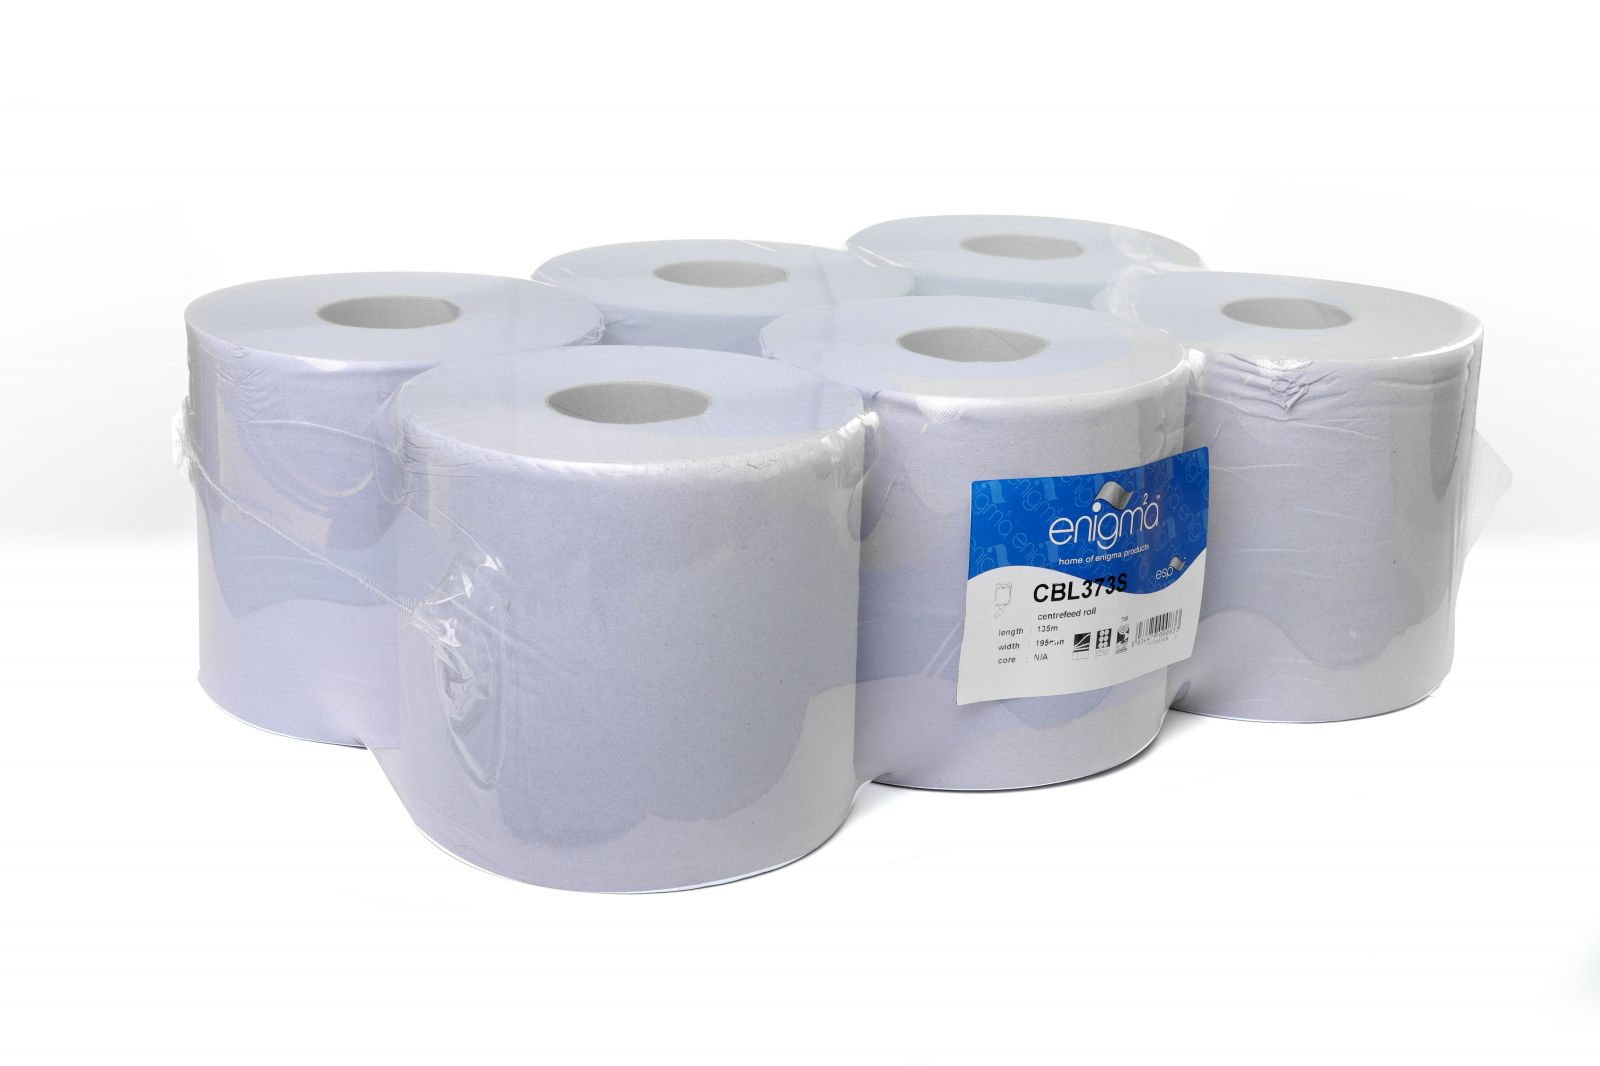 Pallet Deal   Enigma   Centrefeed Roll   2 Ply   Blue   6 Rolls    CBL375S   77 Packs